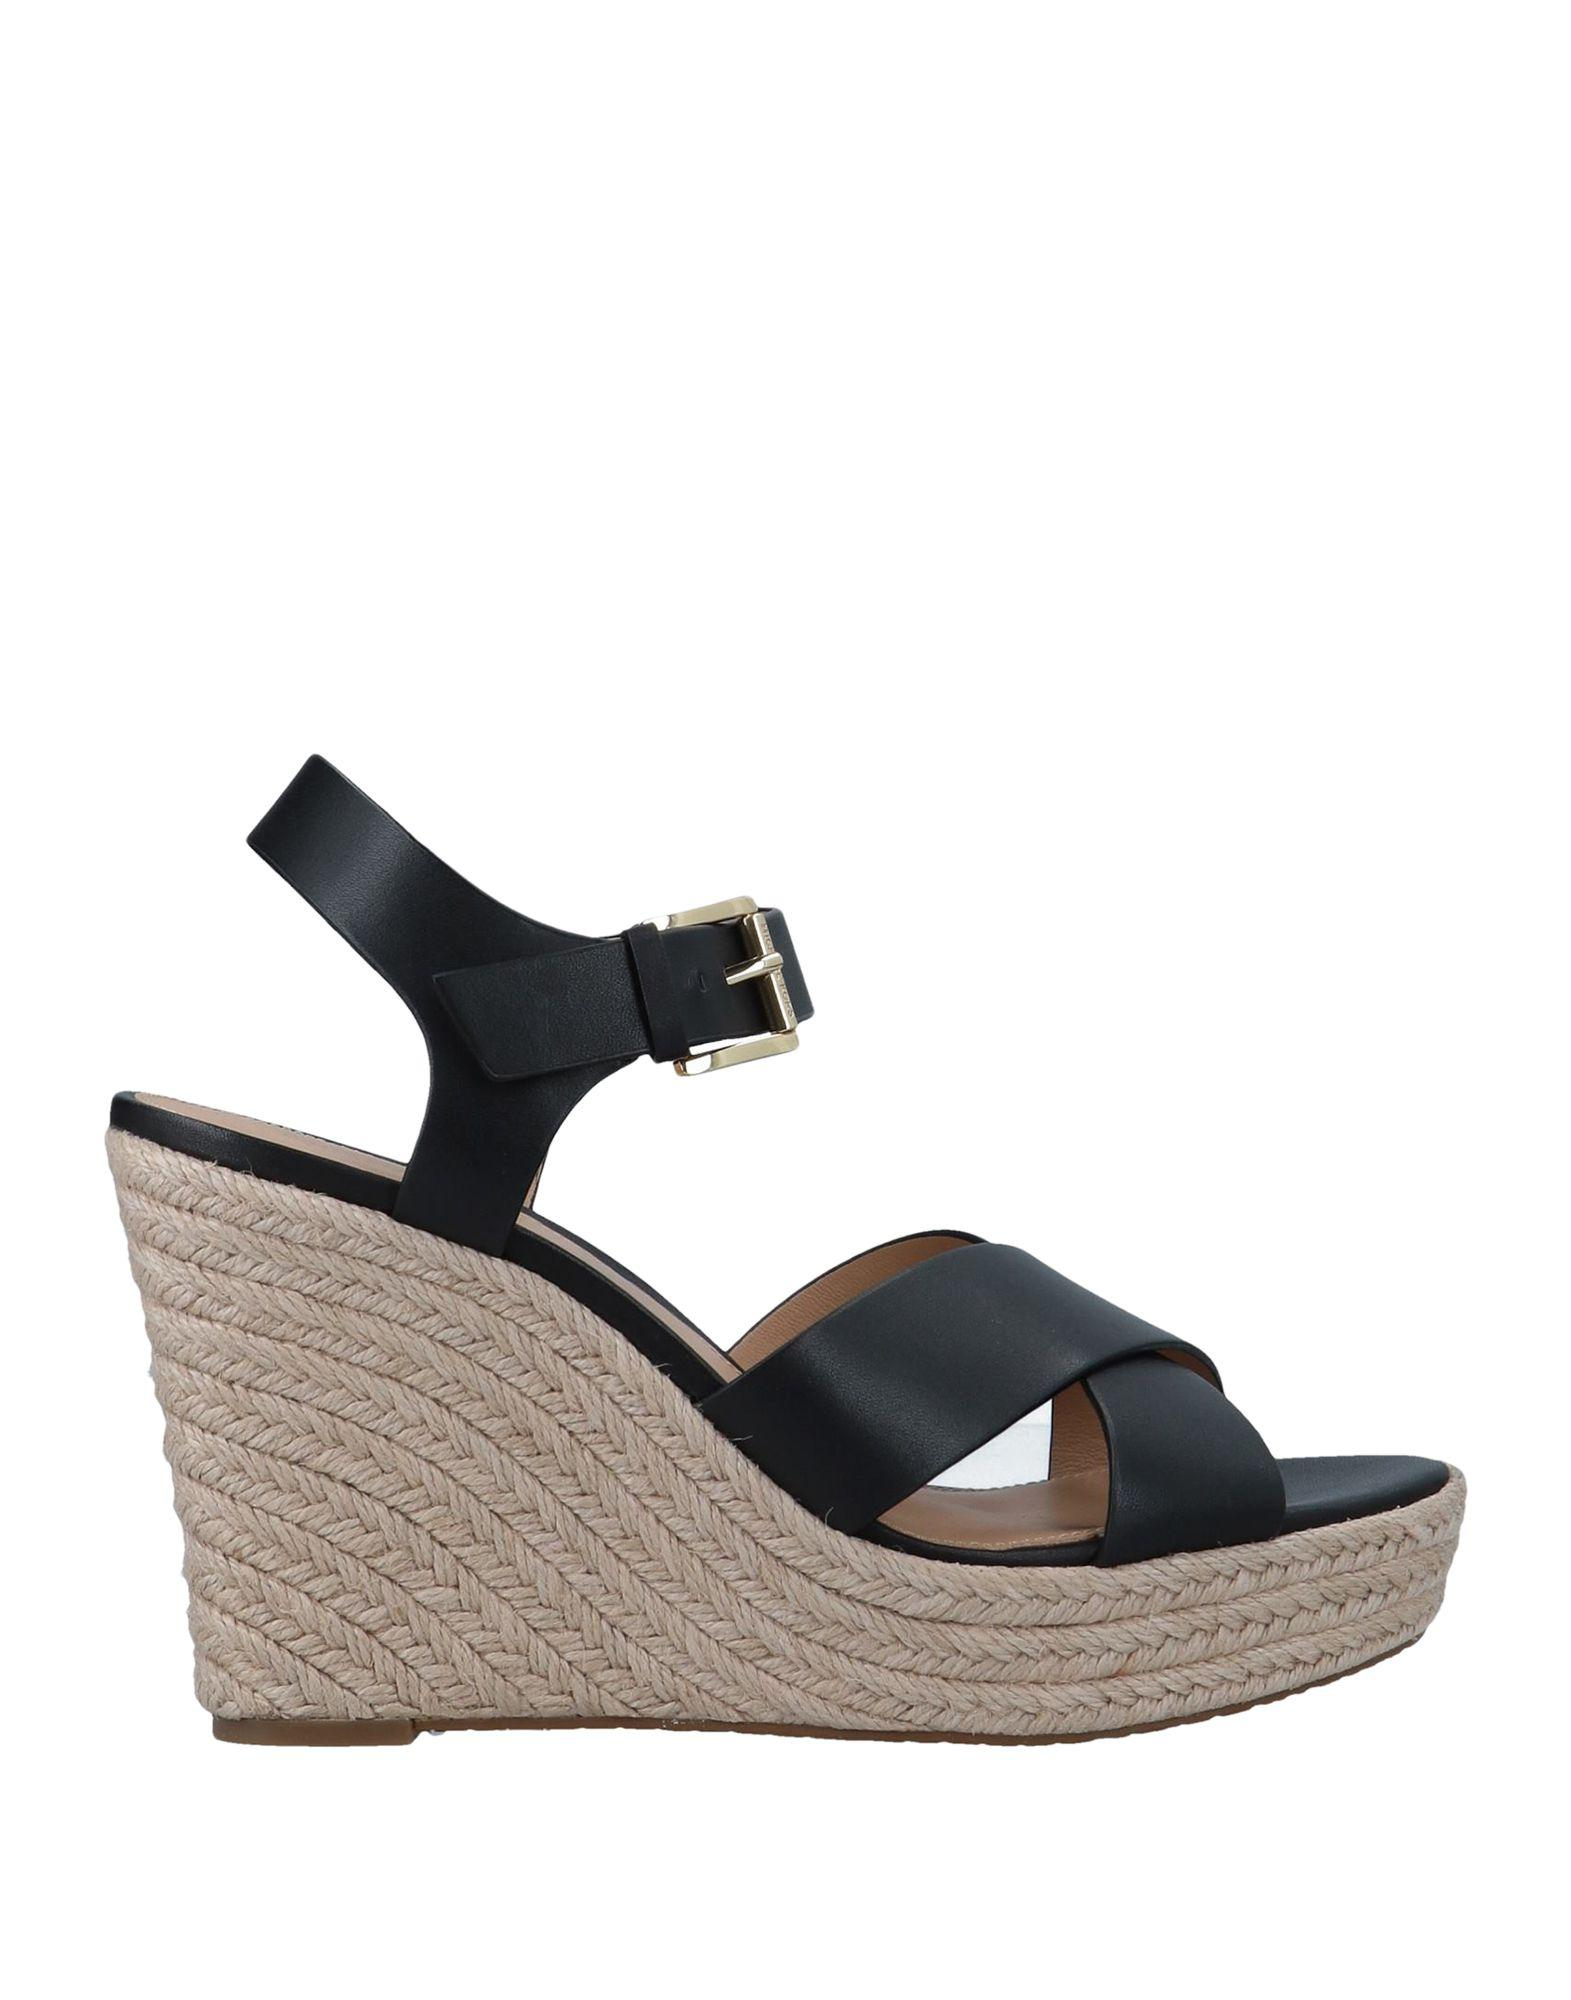 d130ead2976d Lyst - Michael Michael Kors Sandals in Black - Save 11.702127659574472%